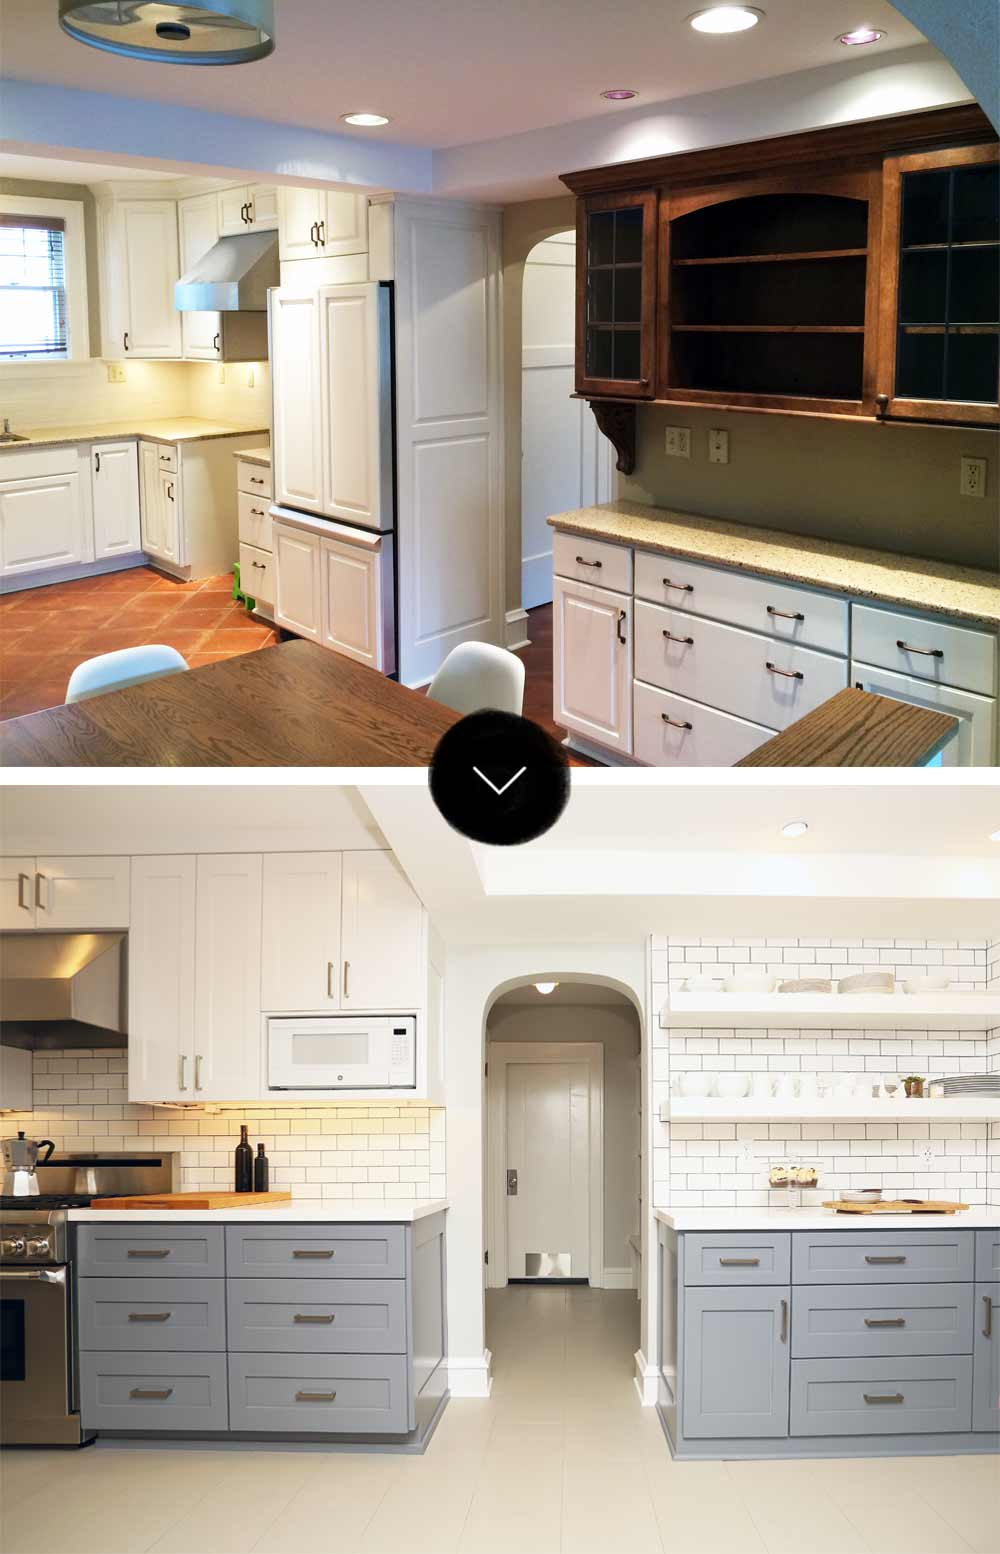 Before & After: A Light and Bright Tudor Remodel, on Design*Sponge